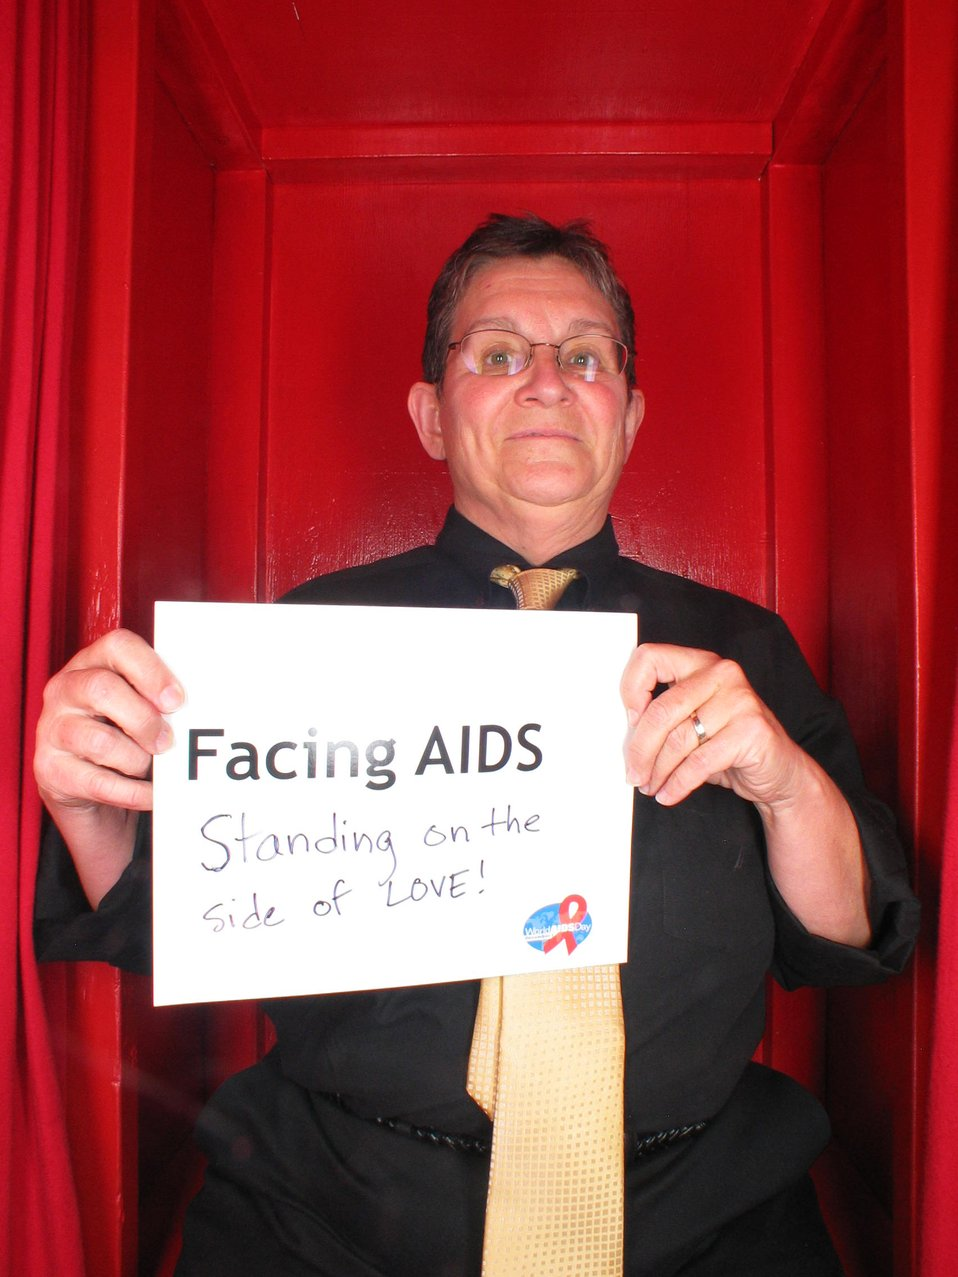 Facing AIDS standing on the side of love!